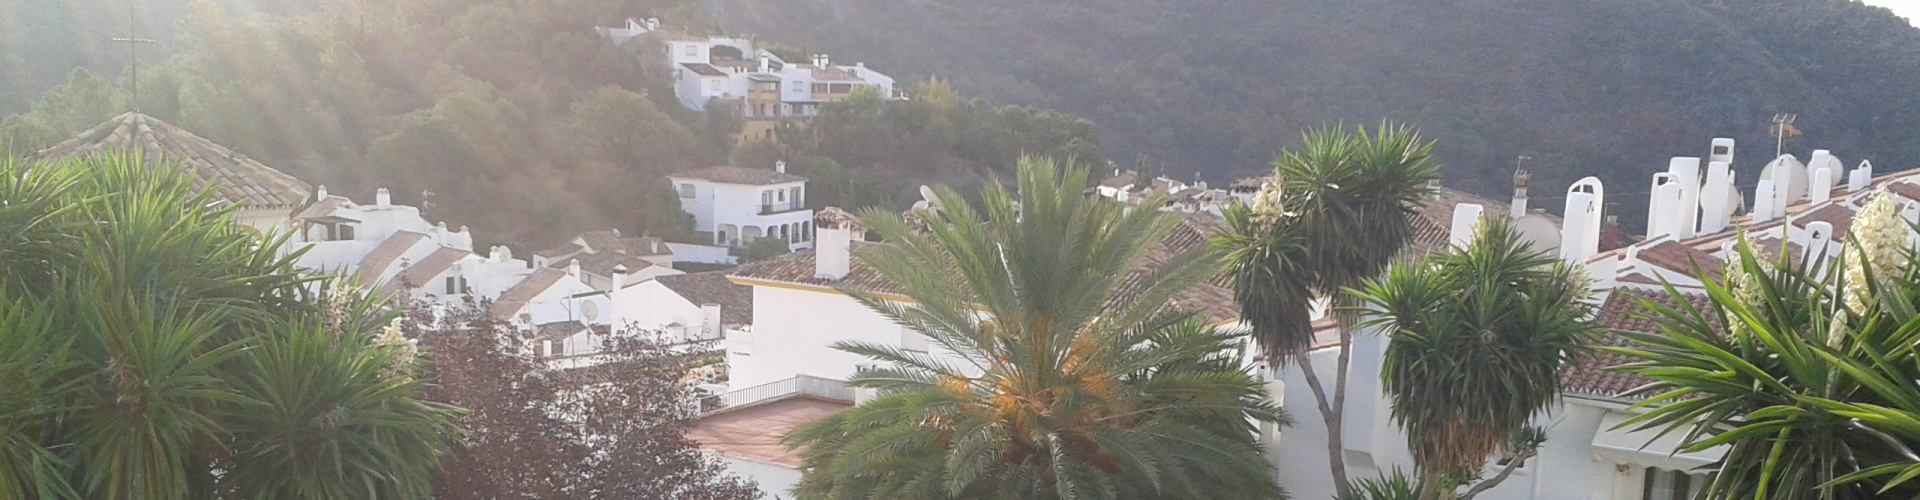 Benahavis, the jewel of the Costa del Sol